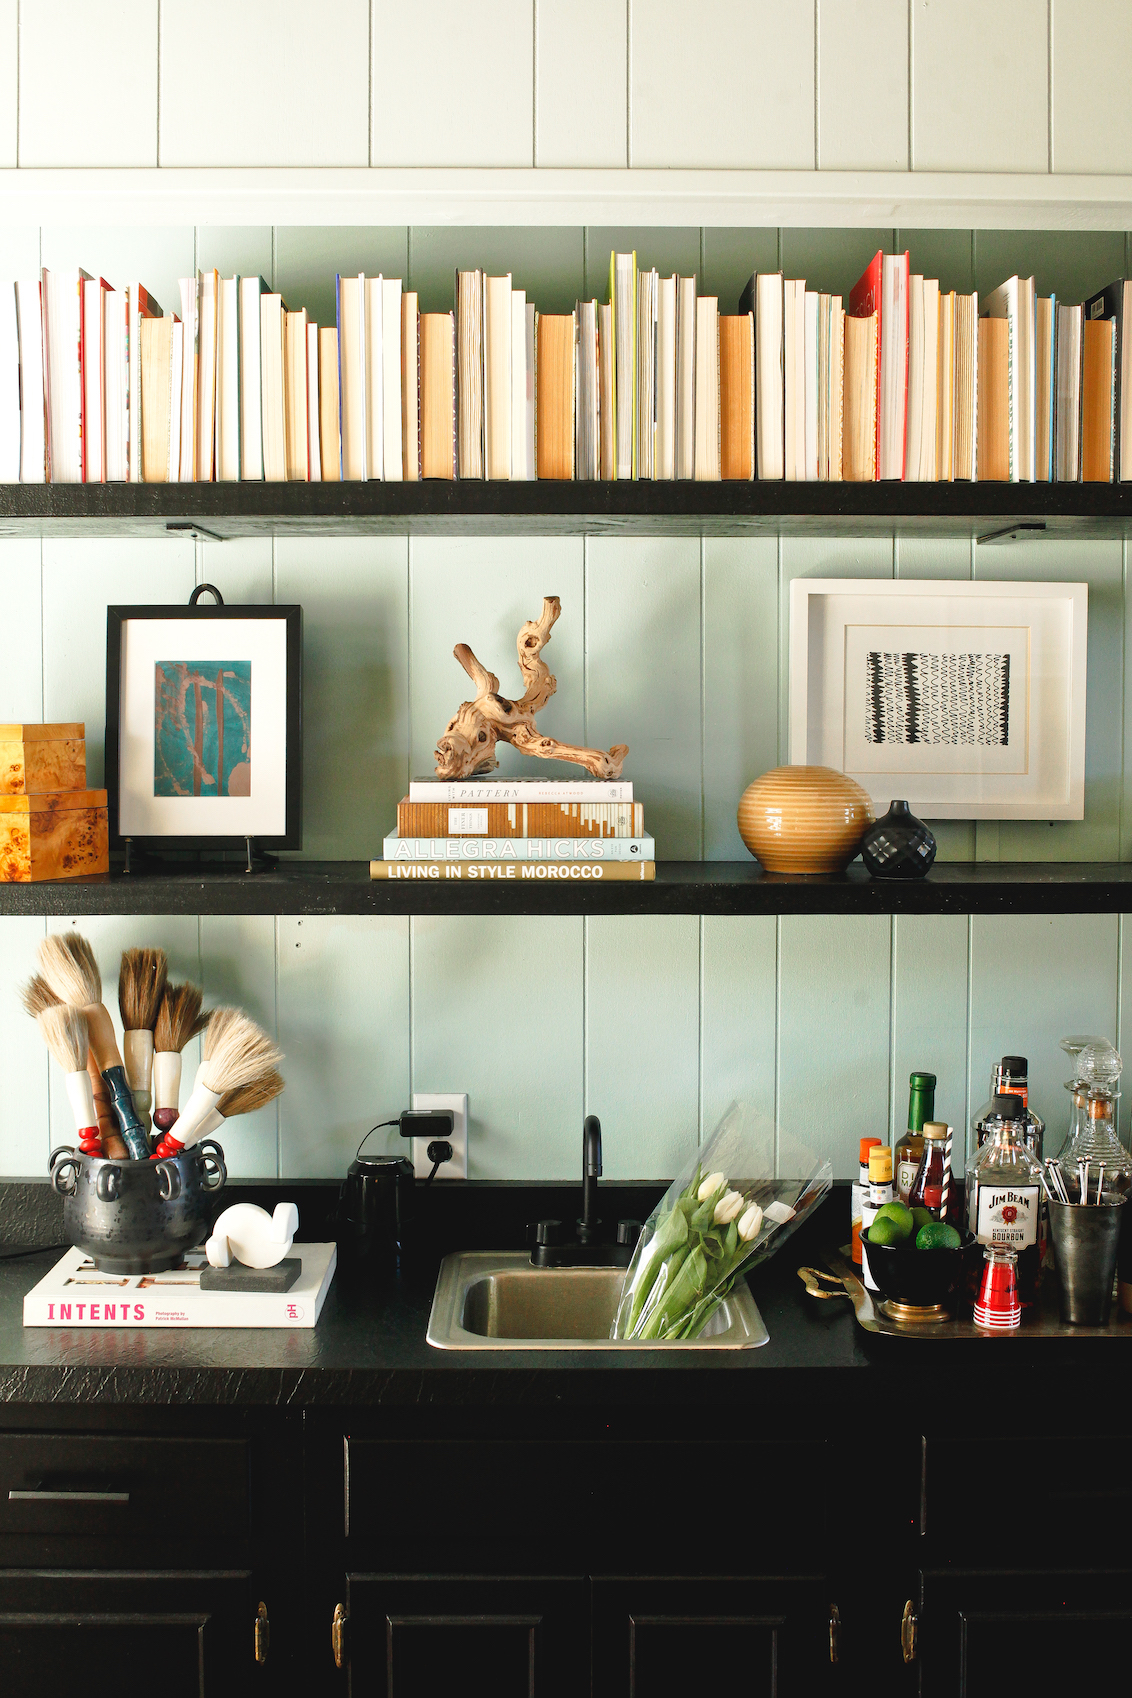 8ca895e78cbd I love that we are revisiting some previously featured homes here at Design*Sponge,  as the blog winds down in our final months of publishing.